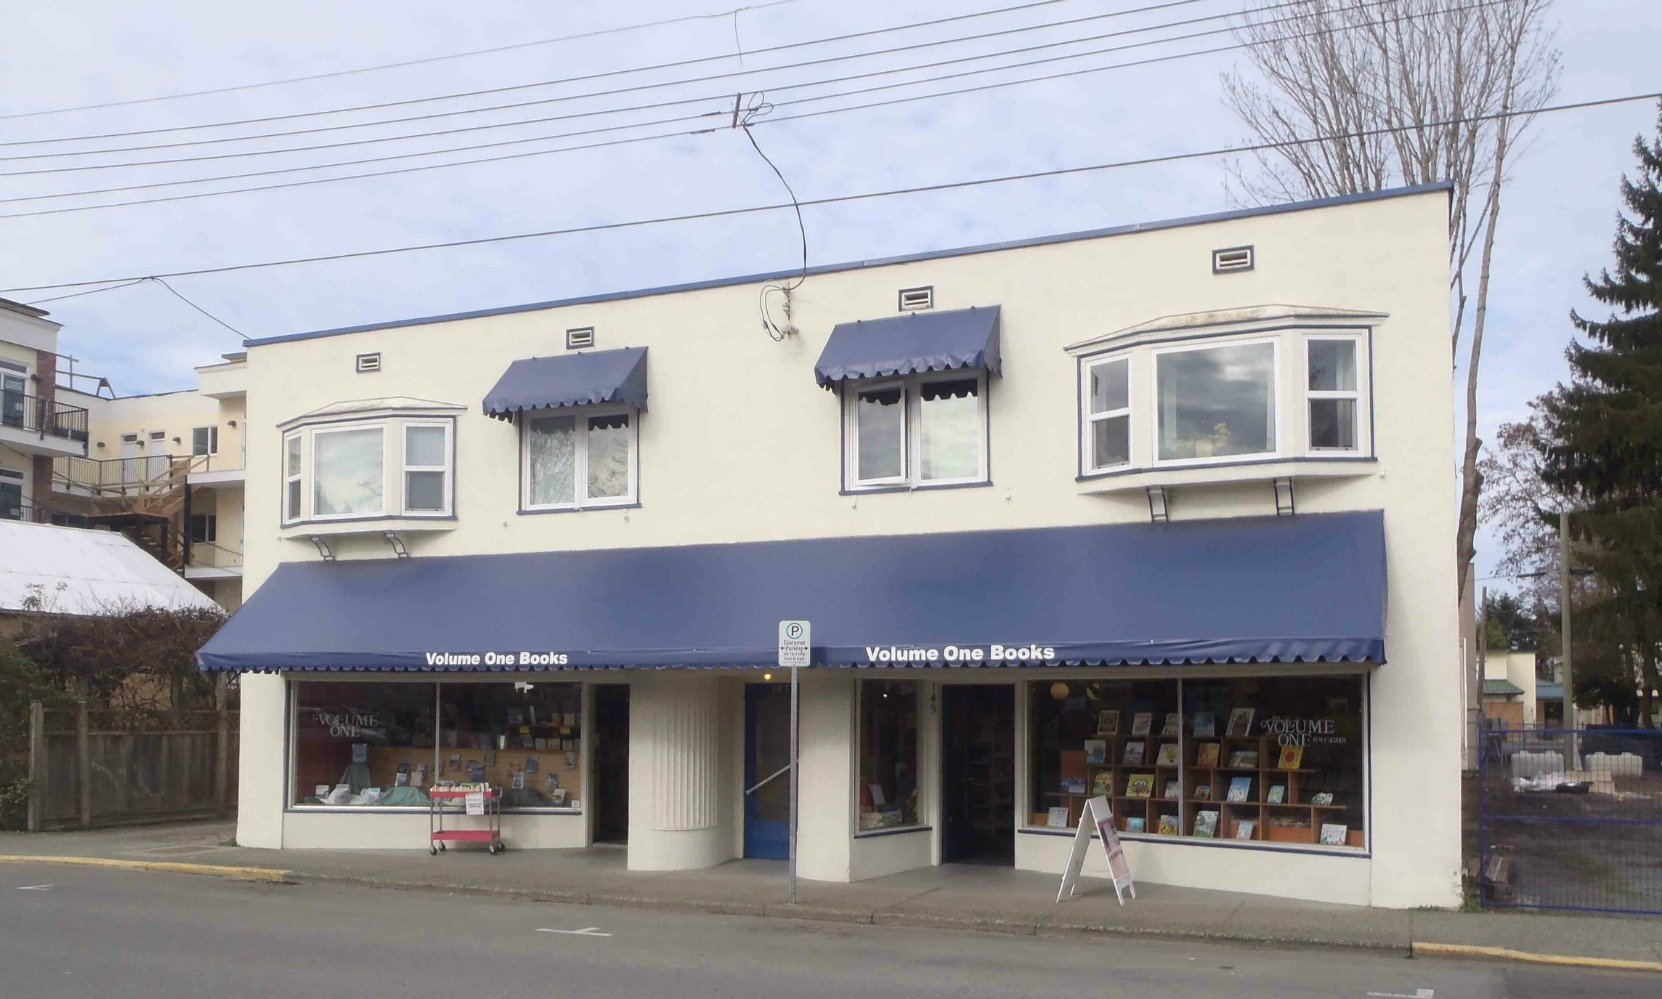 145-149 Kenneth Street. Built in 1949 by Claude Green. Occupied by Volume One Books since 1972